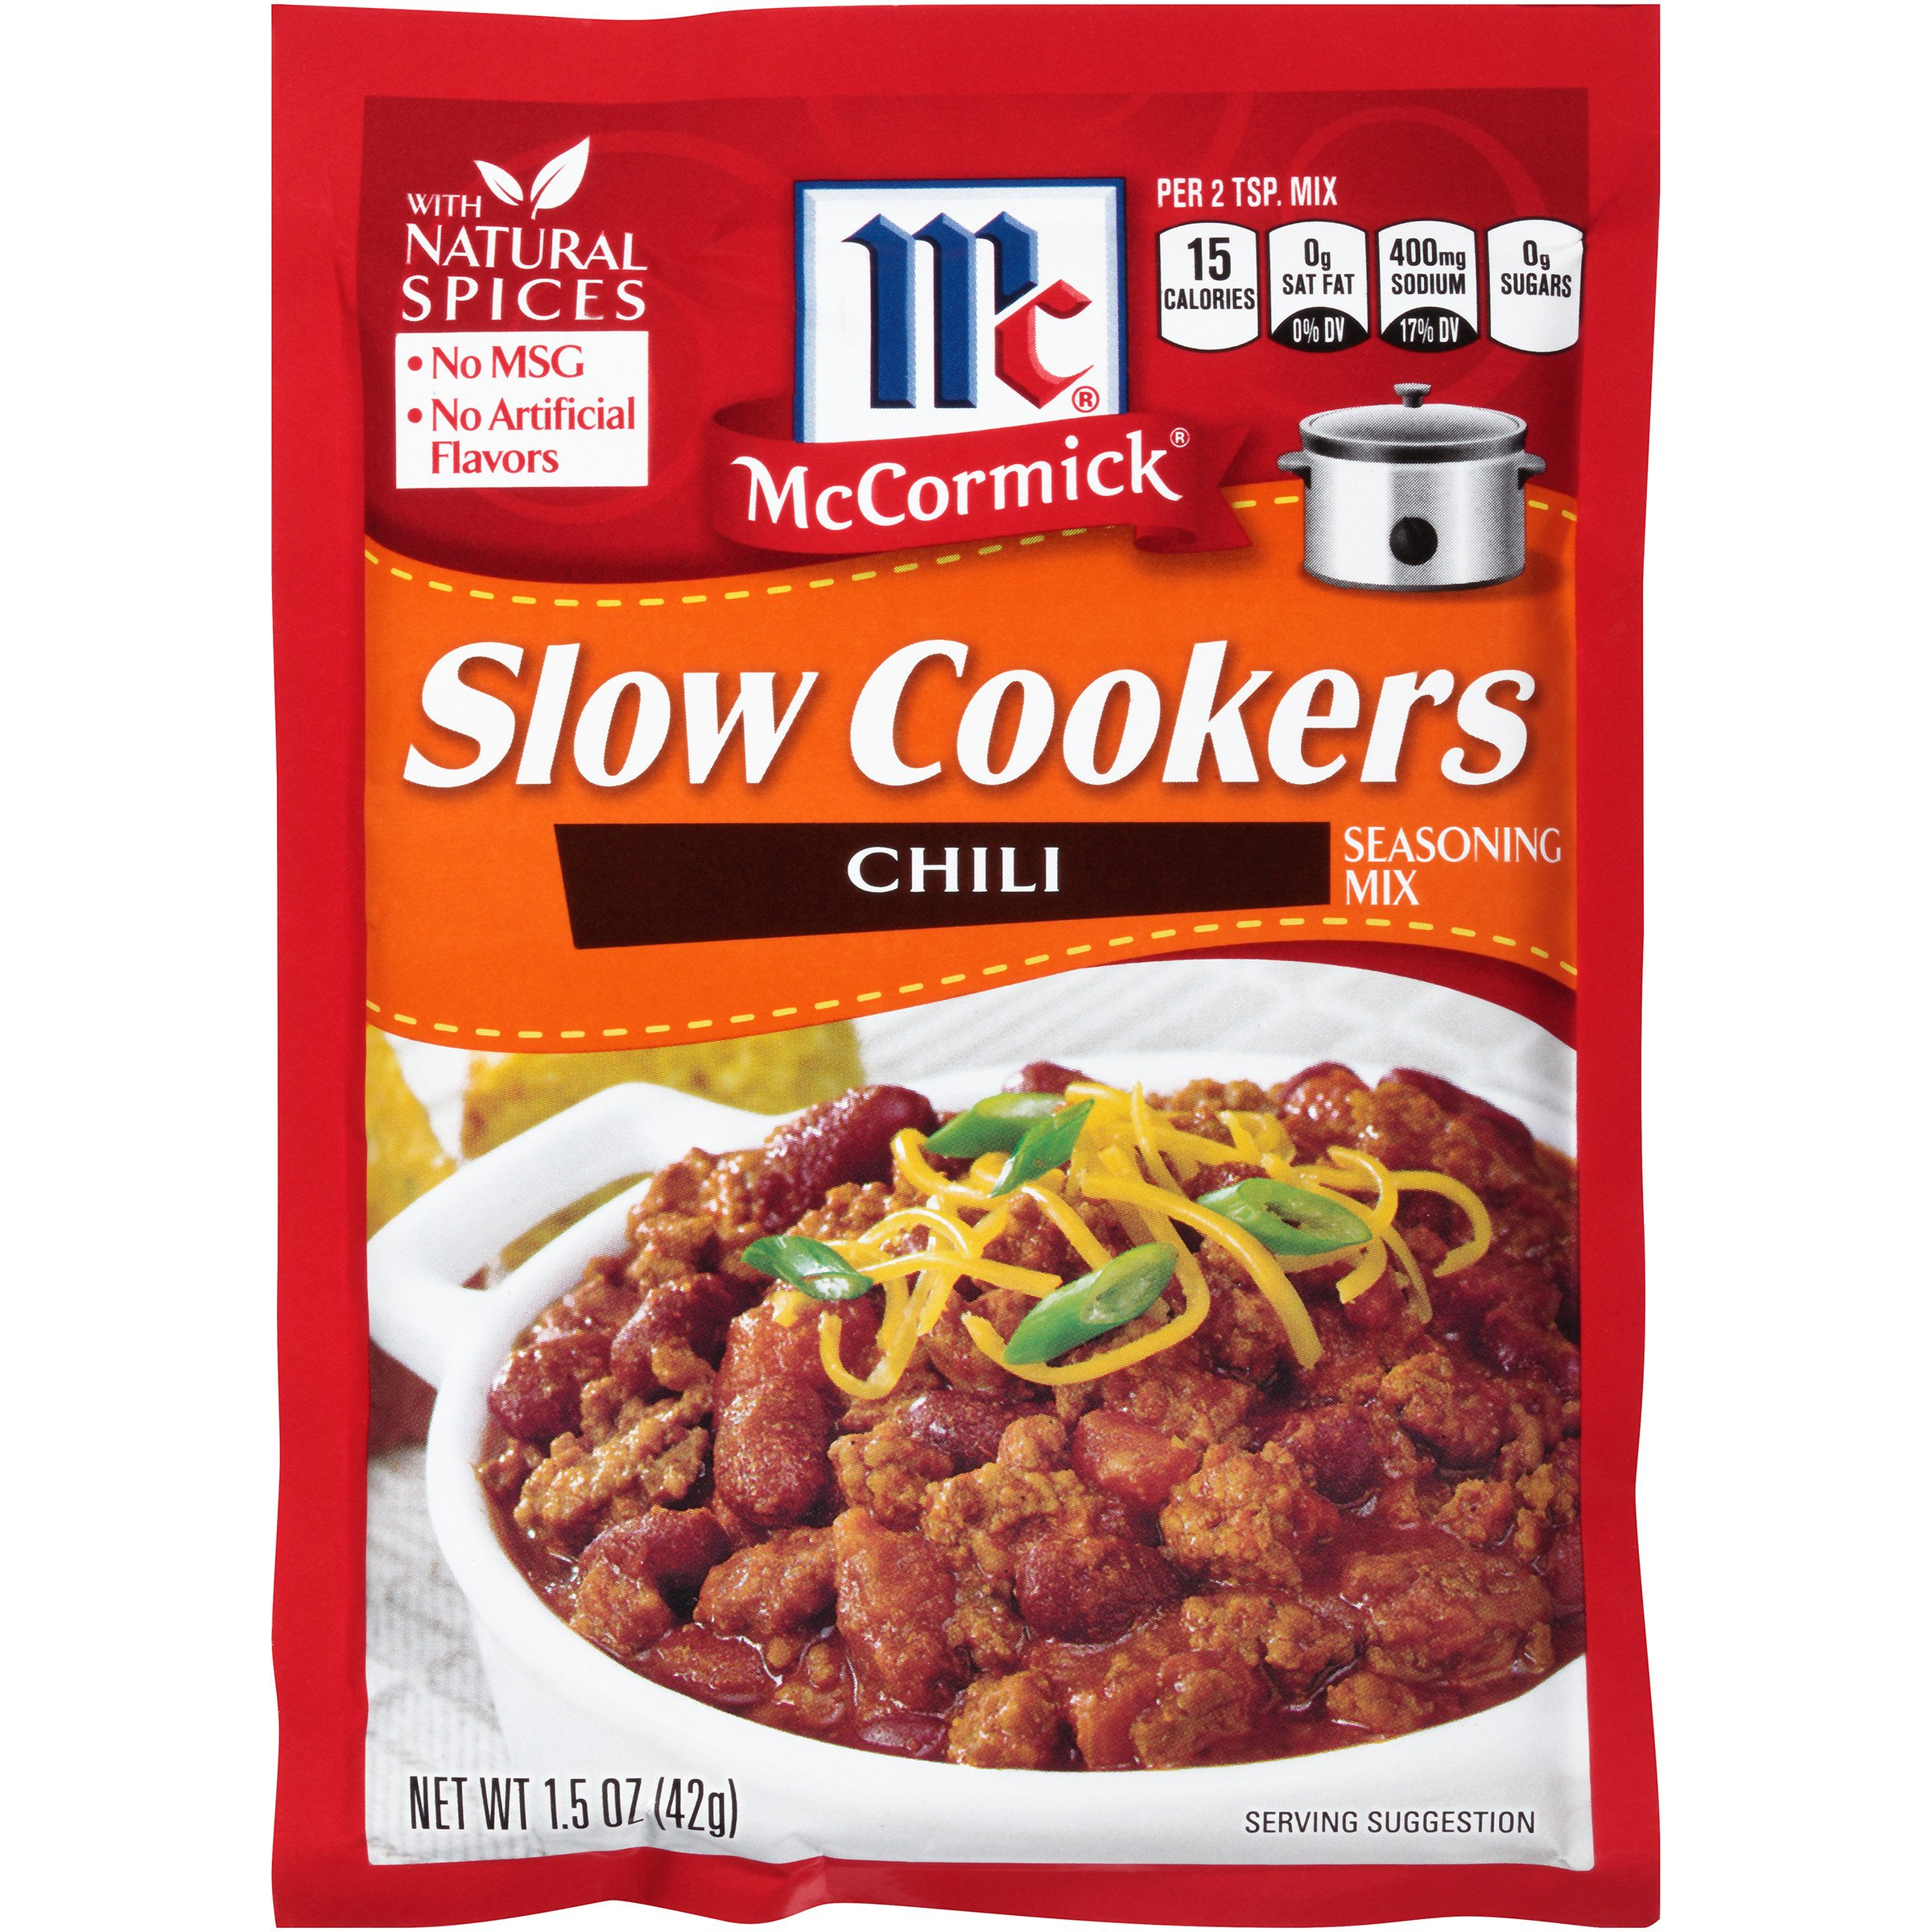 McCormick Slow Cookers Chili Seasoning Mix, 1.5 oz by McCormick (Image #1)